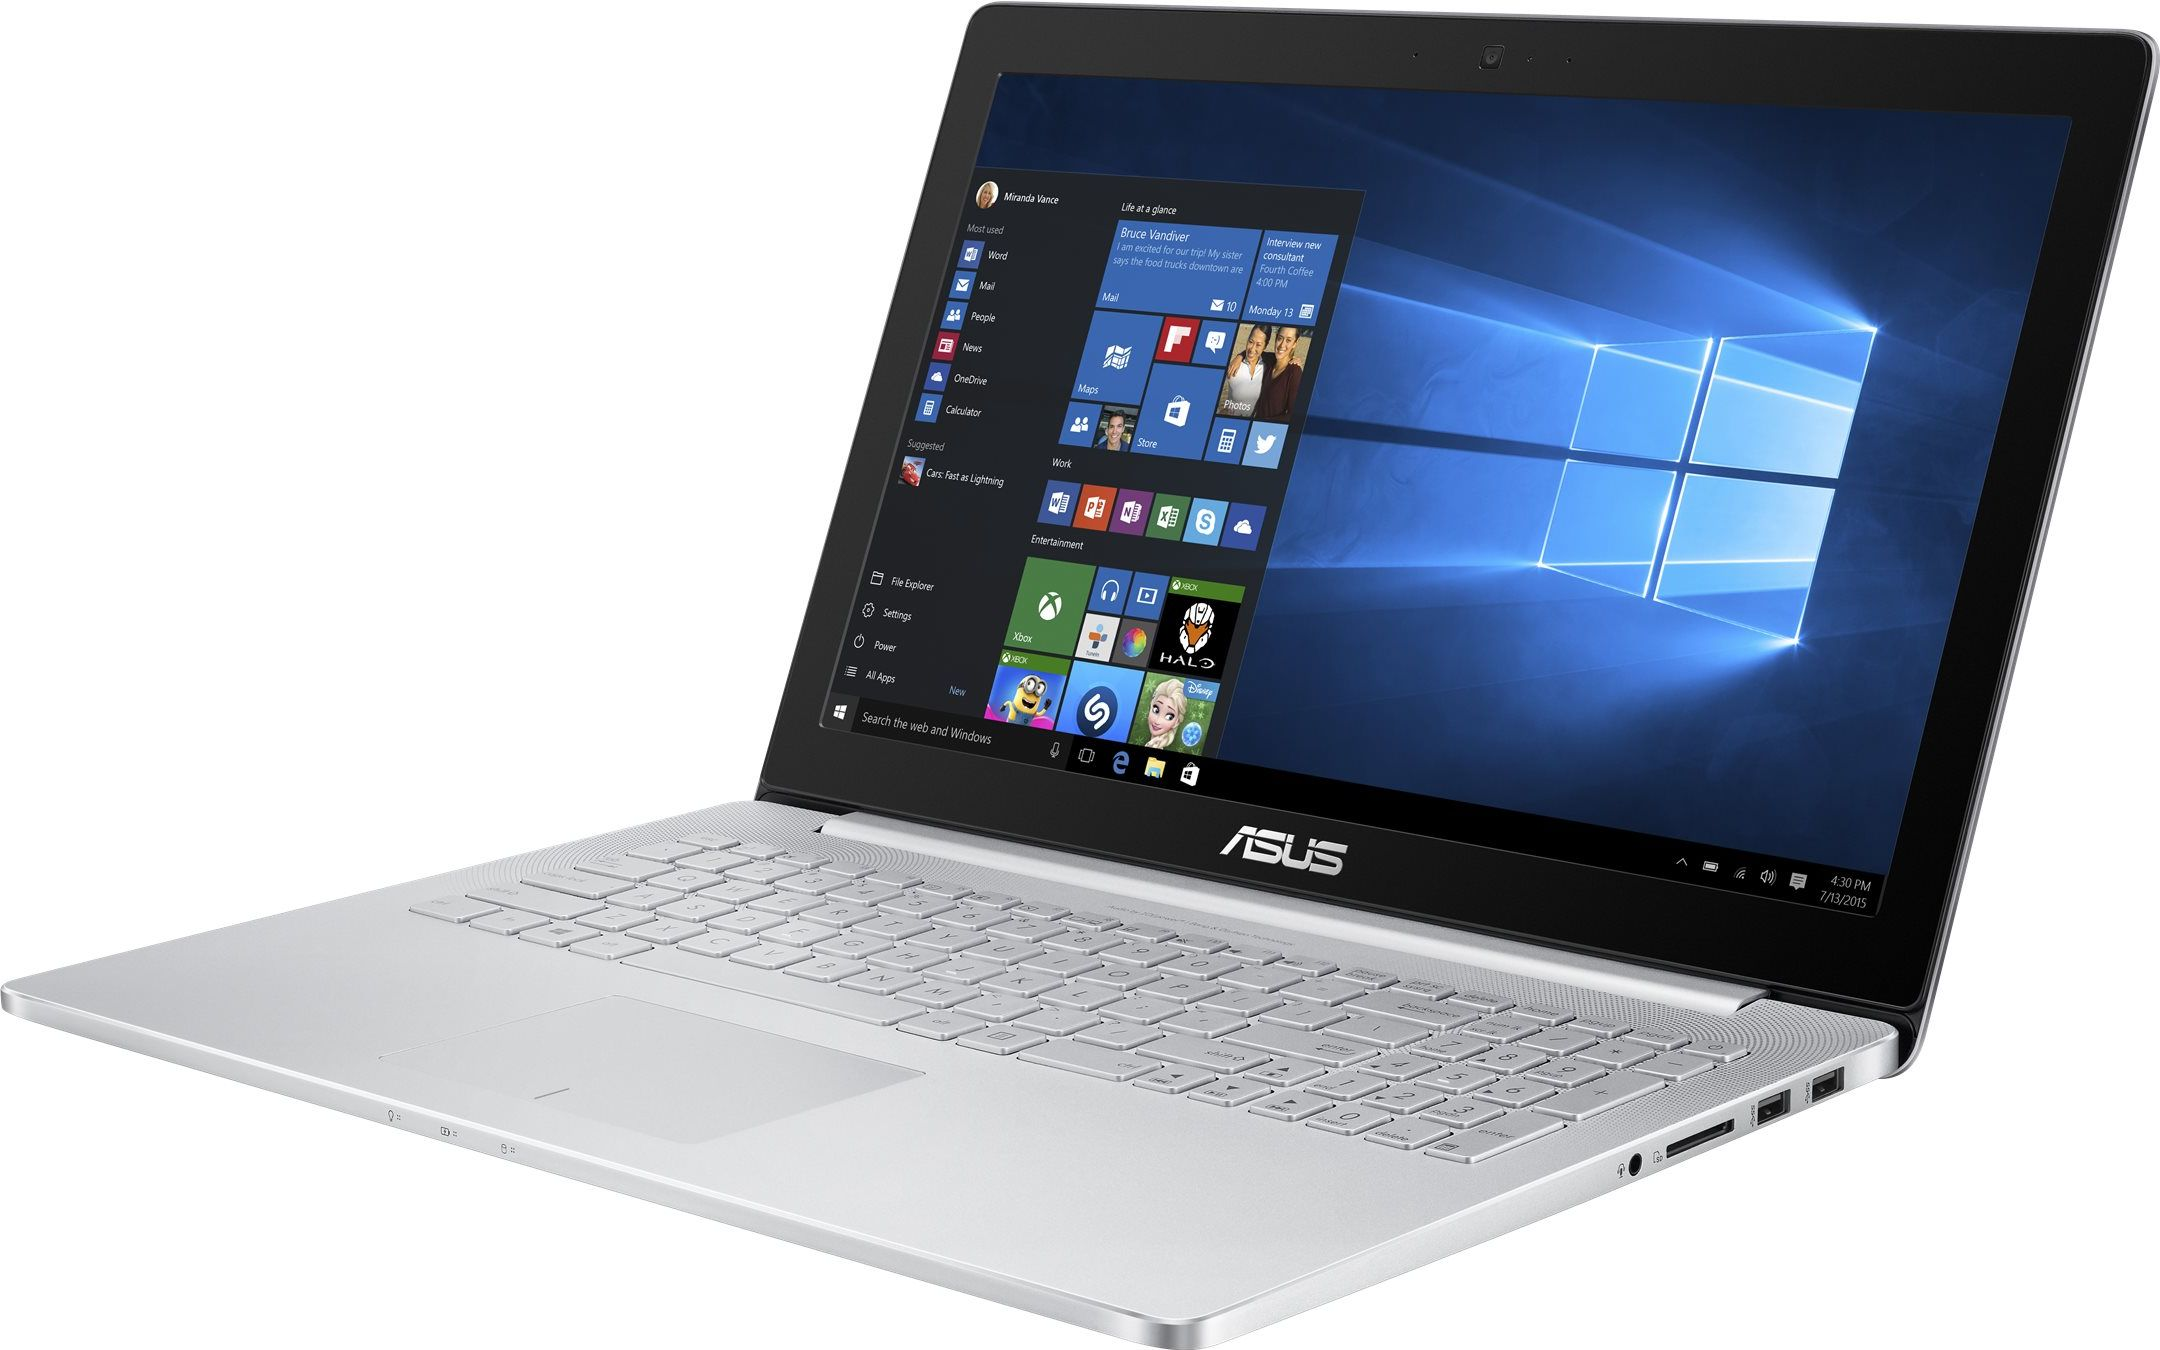 best online poker laptops